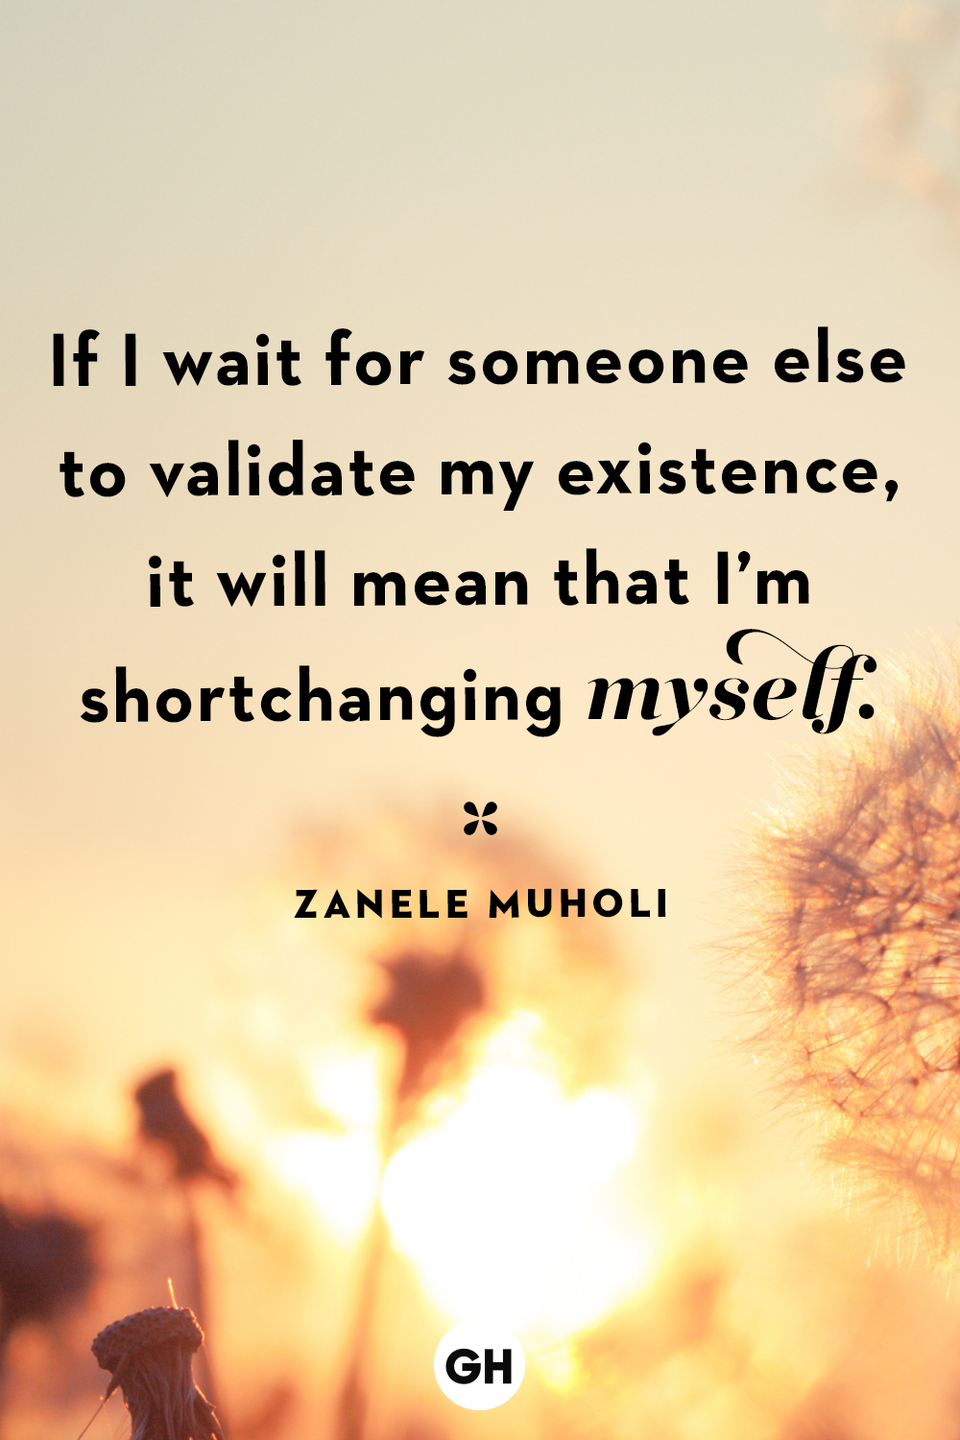 <p>If I wait for someone else to validate my existence, it will mean that I'm shortchanging myself.</p>